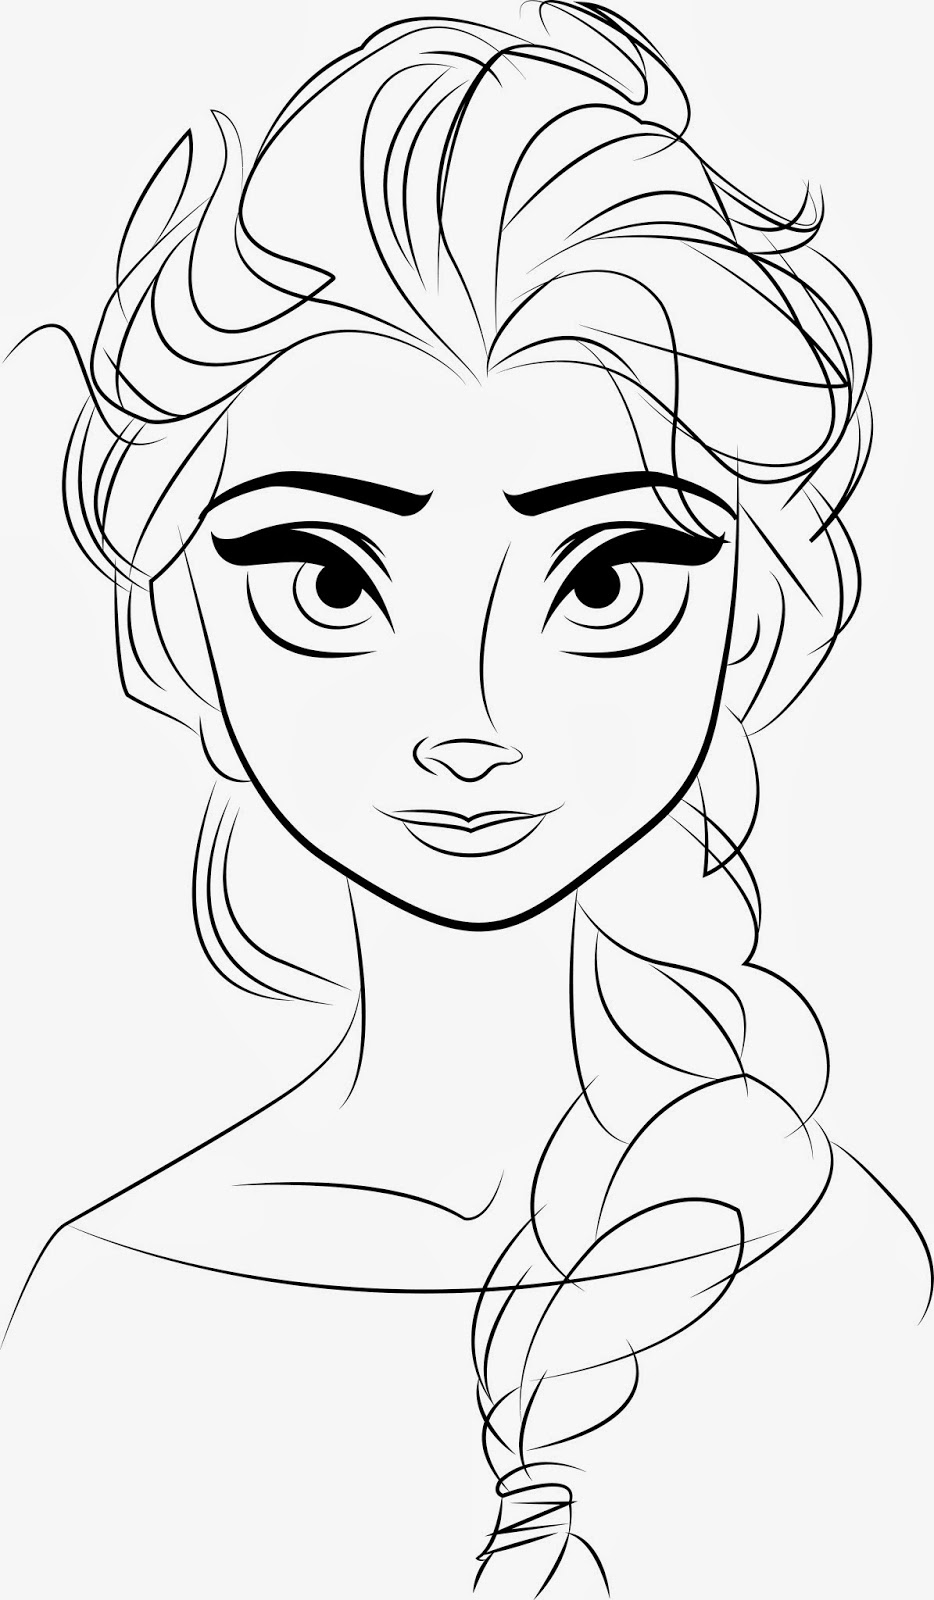 coloring pictures printable free printable elsa coloring pages for kids best coloring printable pictures